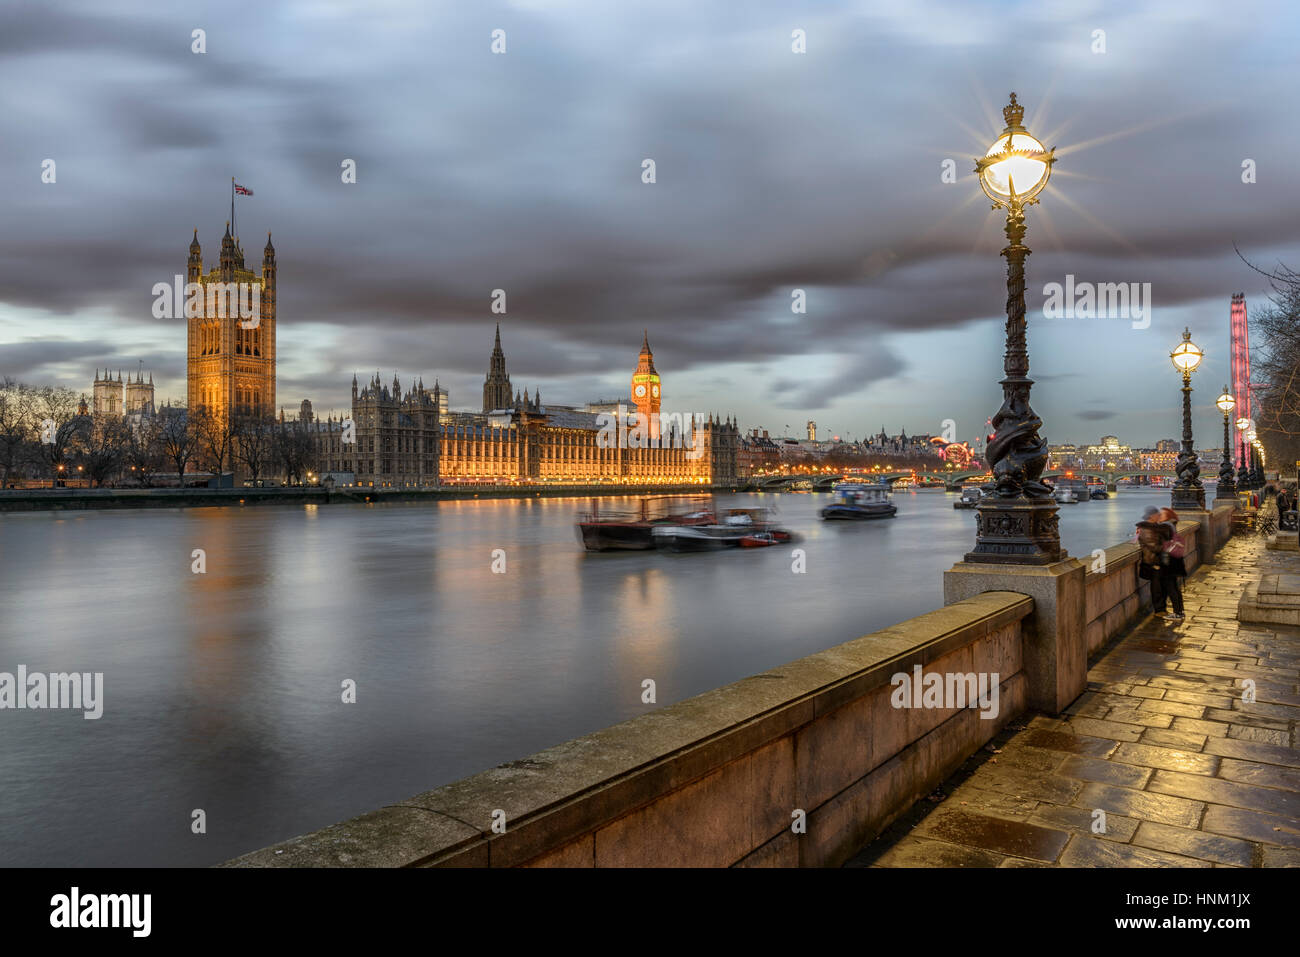 The Houses of Parliament, Westminster,London,England - Stock Image